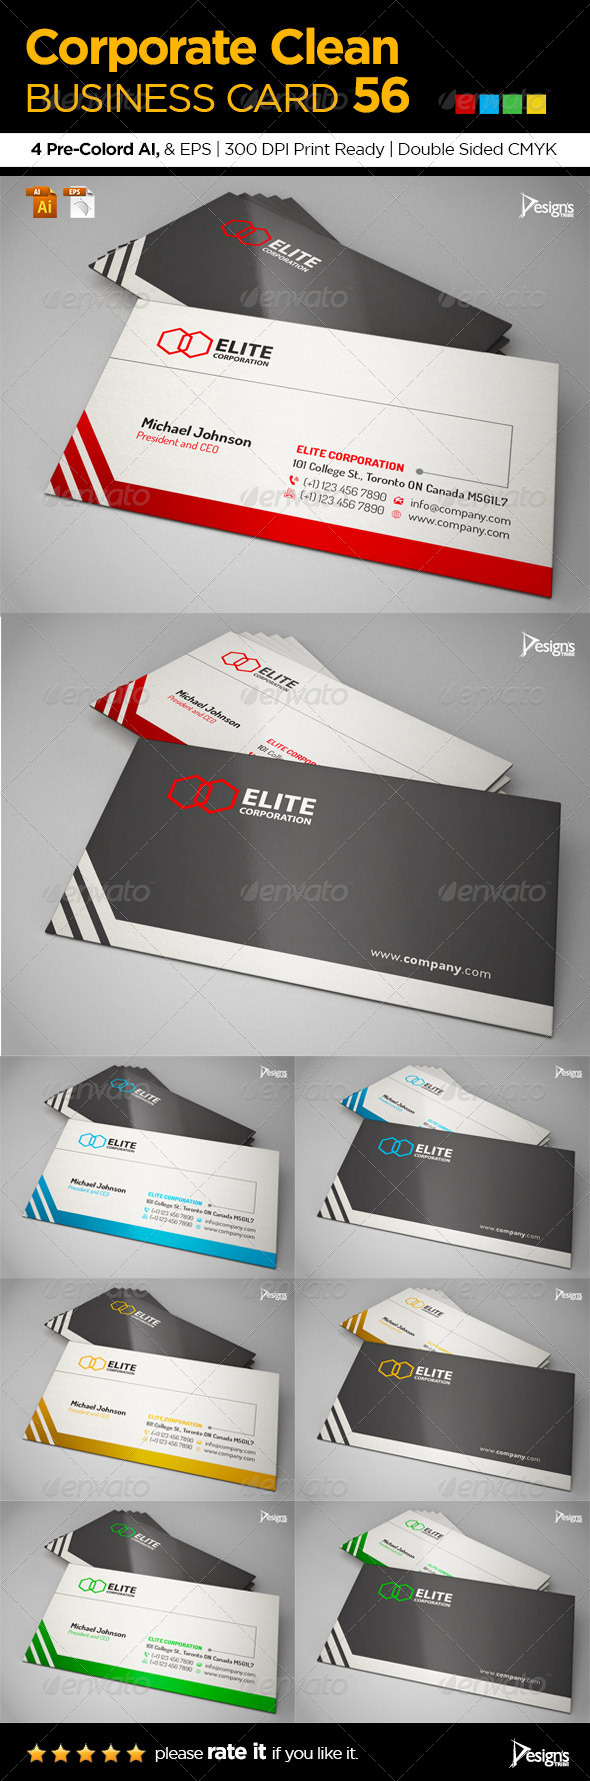 GraphicRiver Corporate Clean Business Card 56 6462183